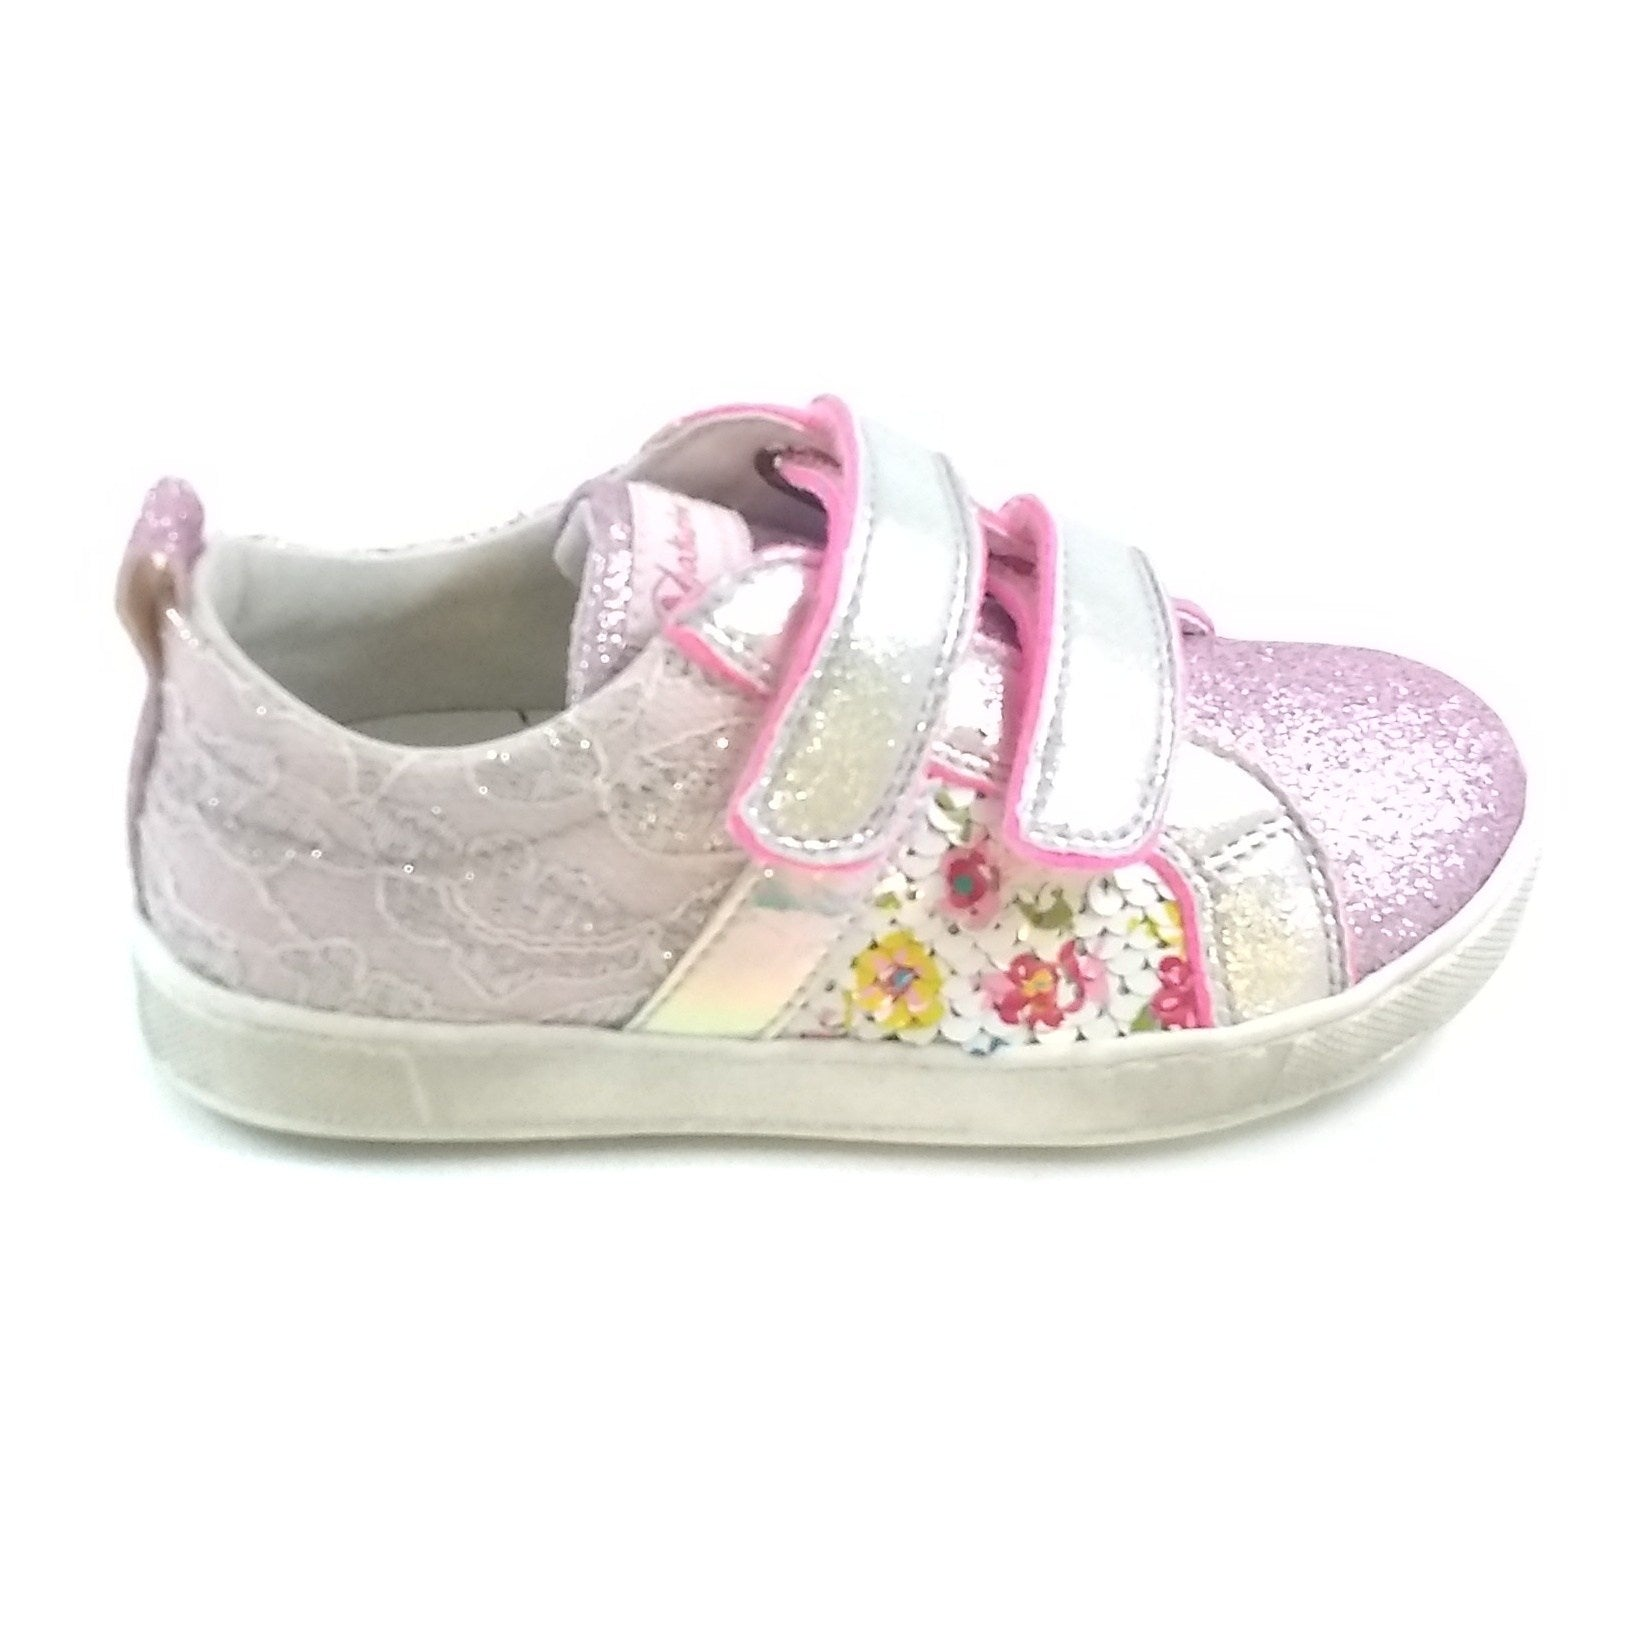 Naturino Pink Sequins And Glitter Sneaker